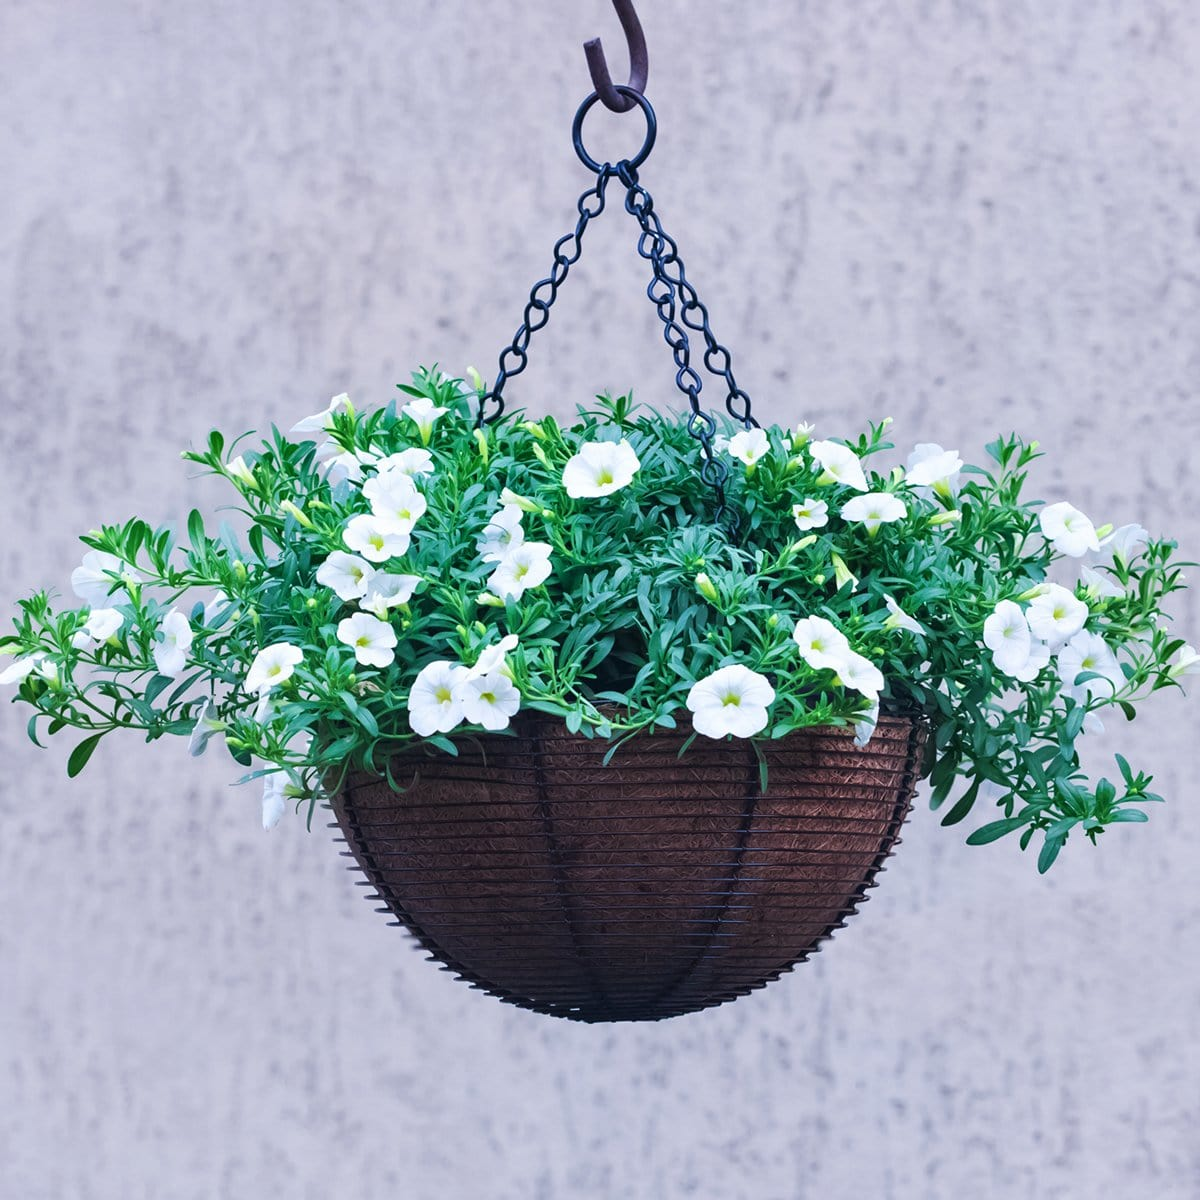 Hanging Basket with Plants